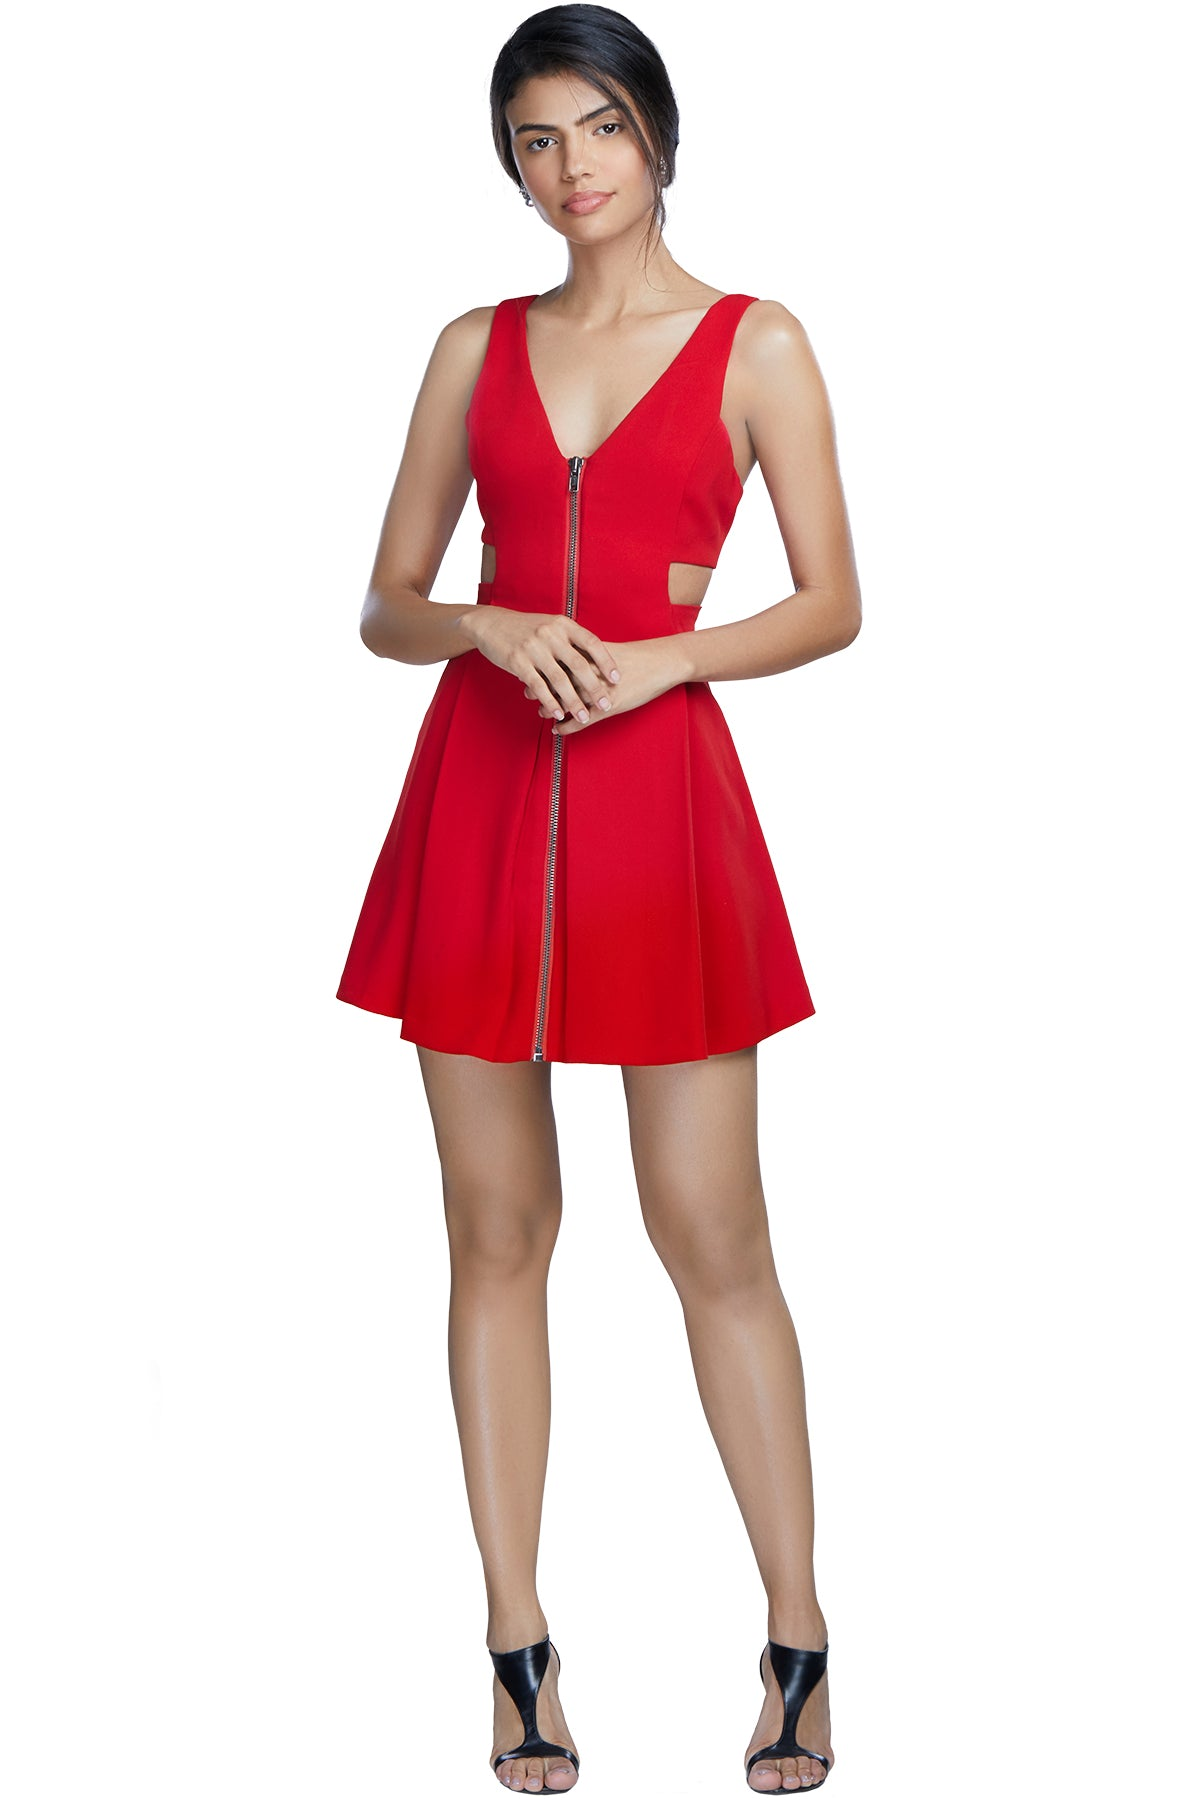 Go the spicy way for your next date night in this sexy cut-out mini dress with a low neck and front zip.